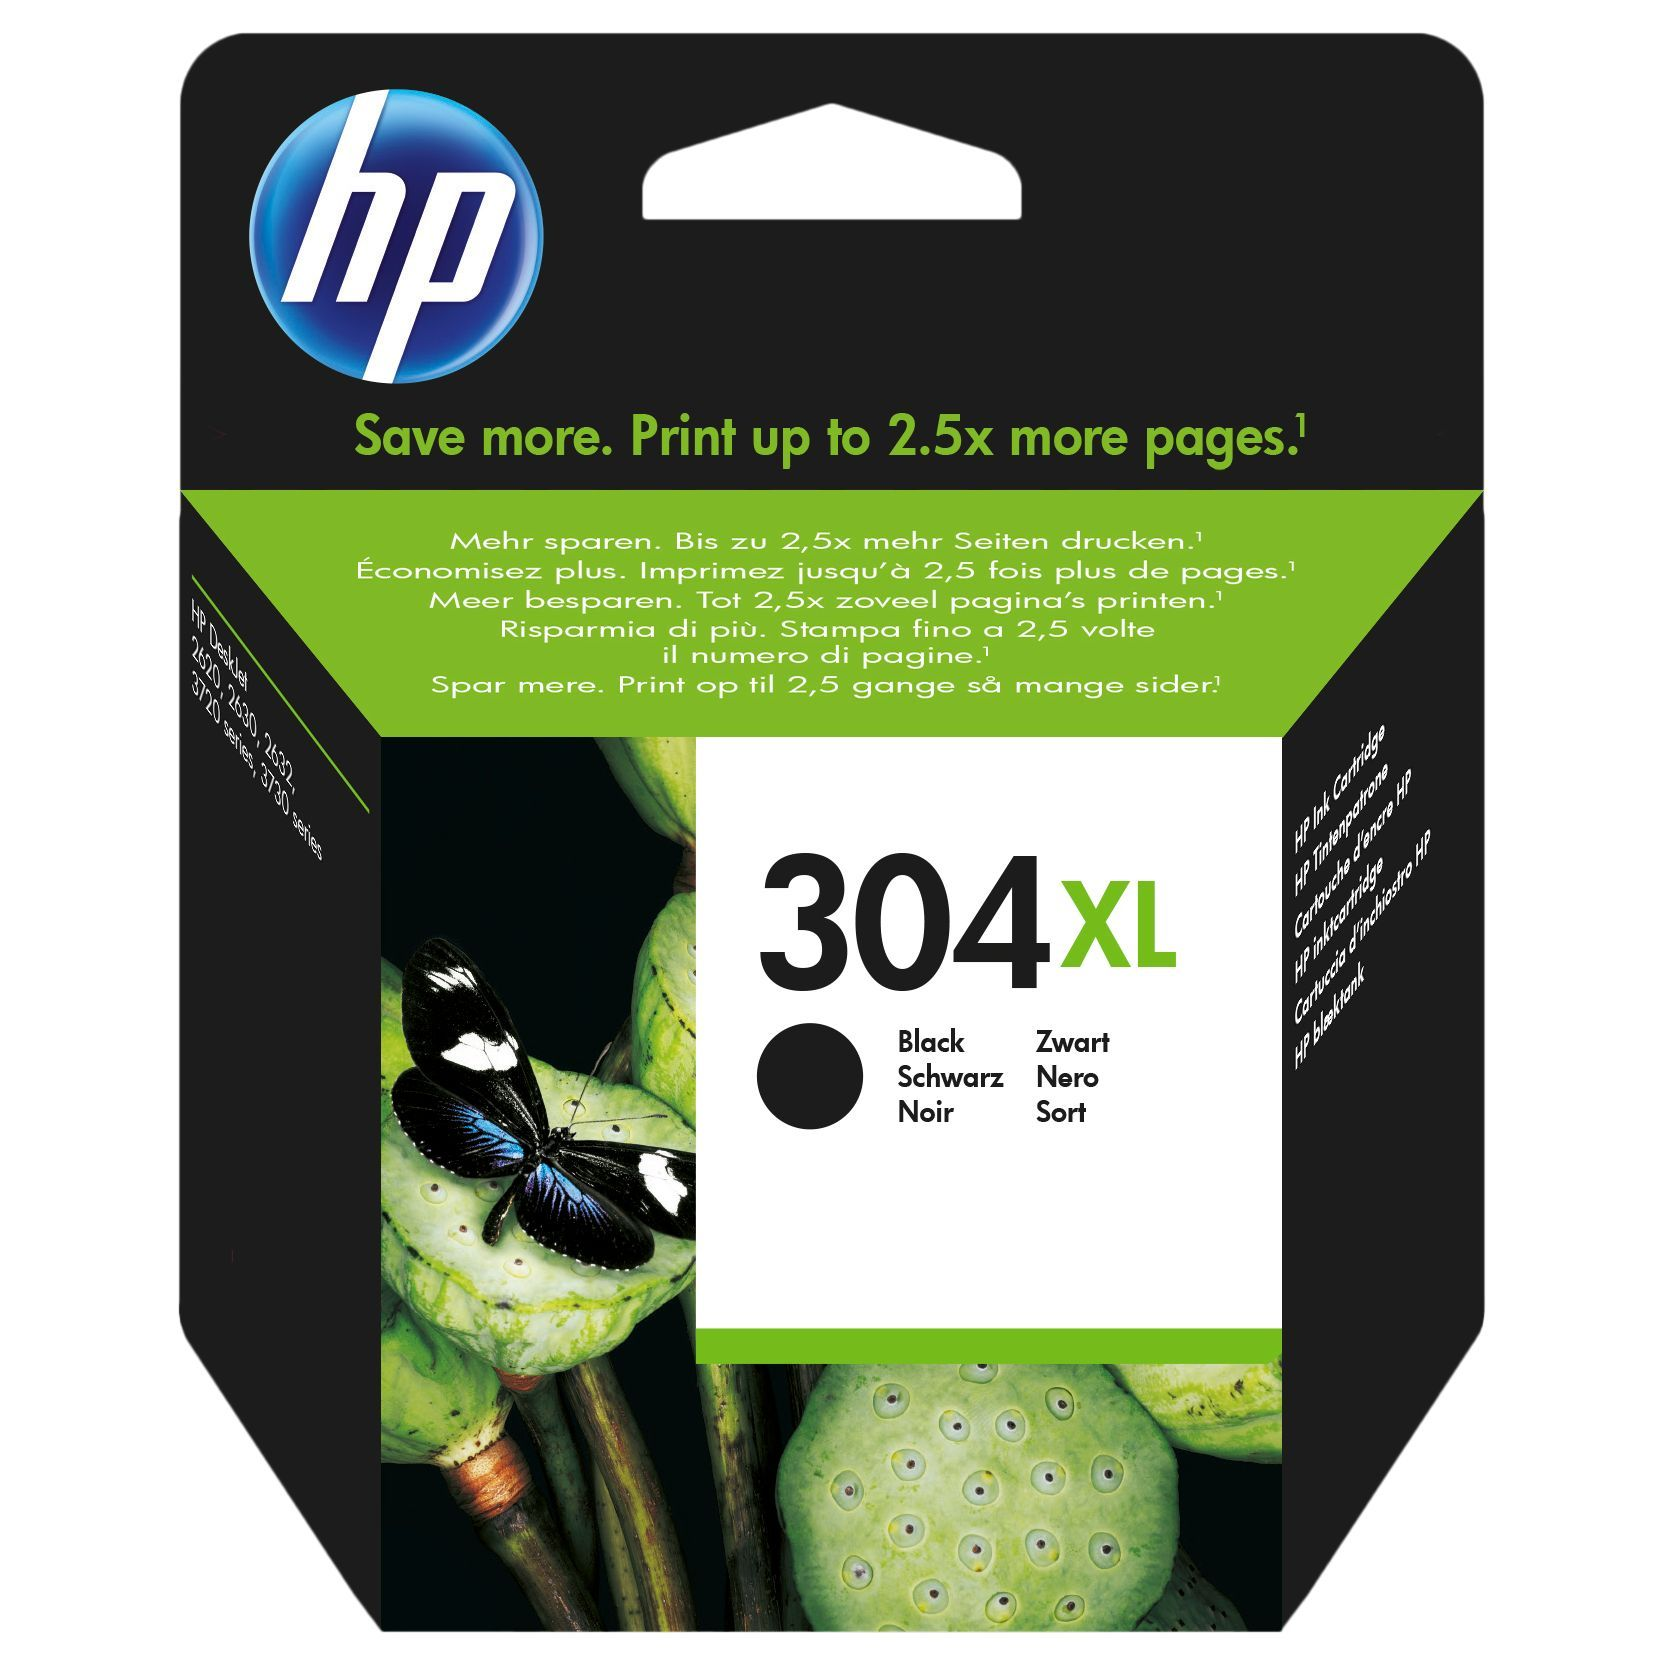 Hp 304 Xl Black Ink Cartridge Products In 2019 Magenta Ink